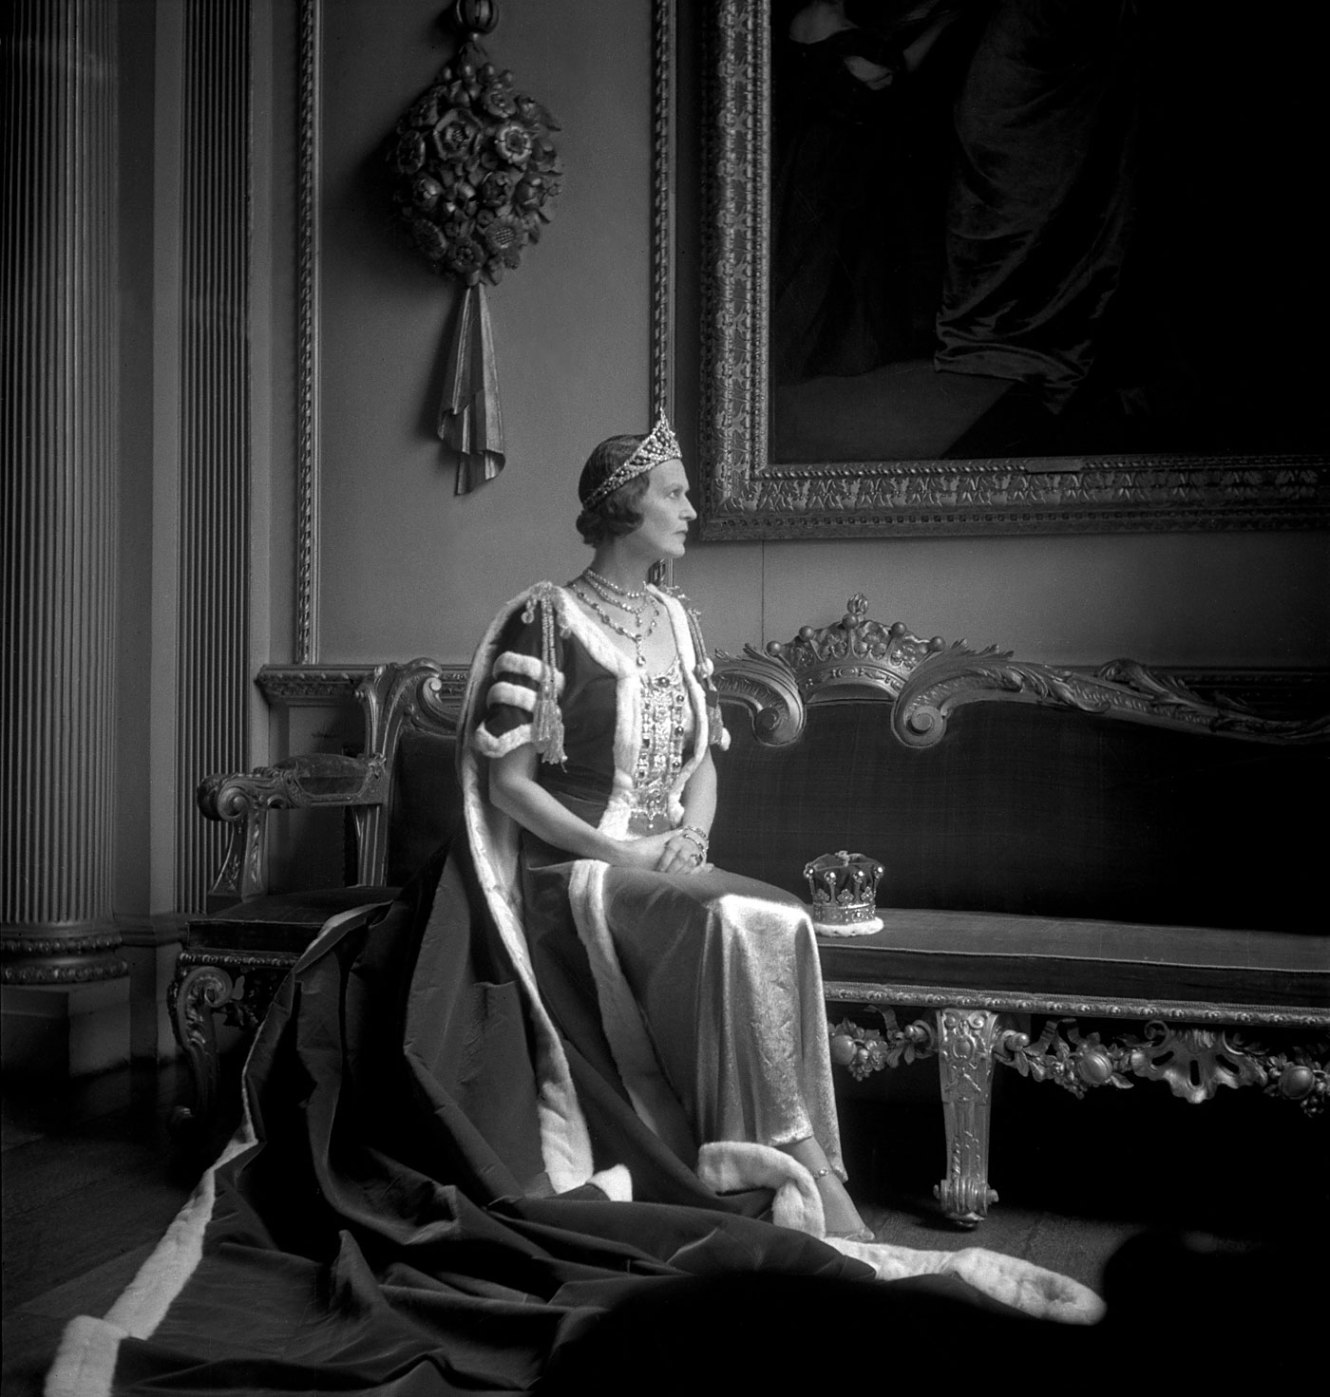 Cecil Beaton. 'The Countess of Pembroke in her Robes for the Coronation of George VI' 1937